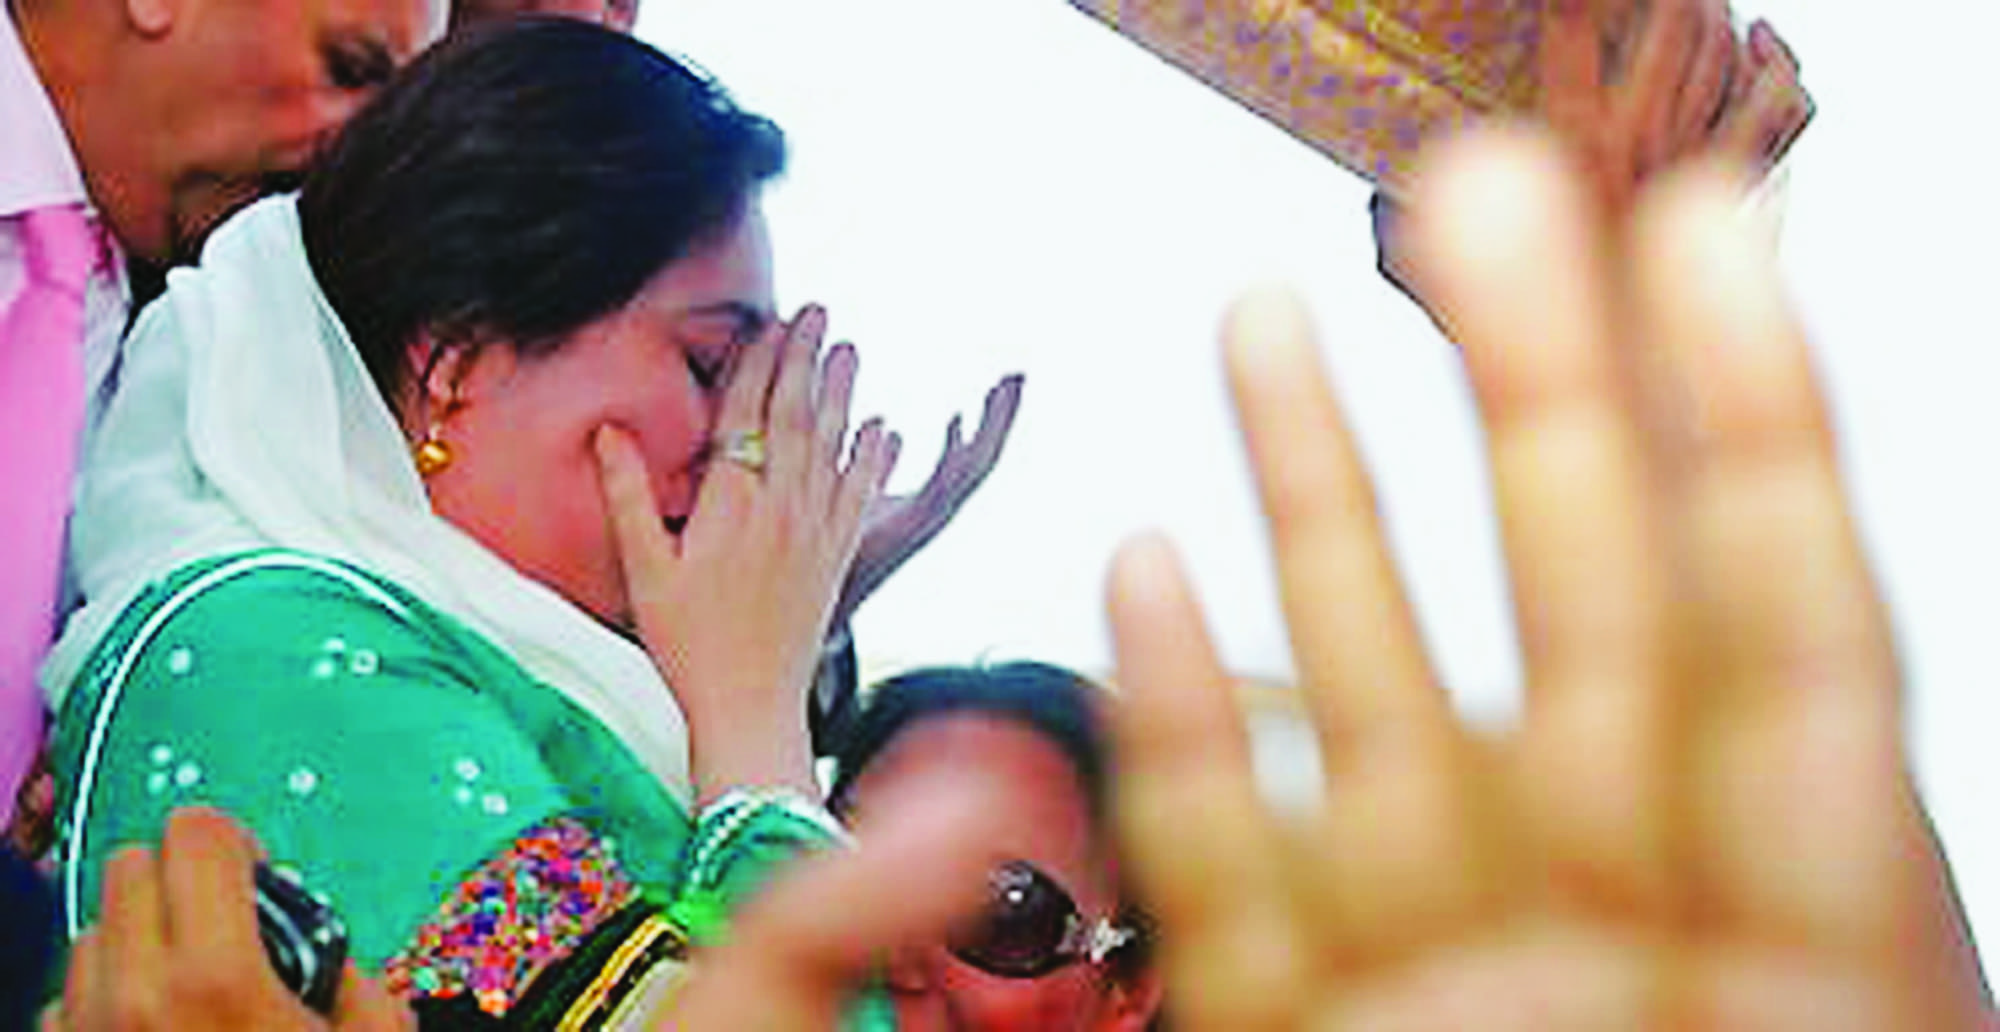 ADDING to his woes was the return of Benazir Bhutto in the wake of the controversial National Reconciliation Order (NRO) Musharraf put his signature to.